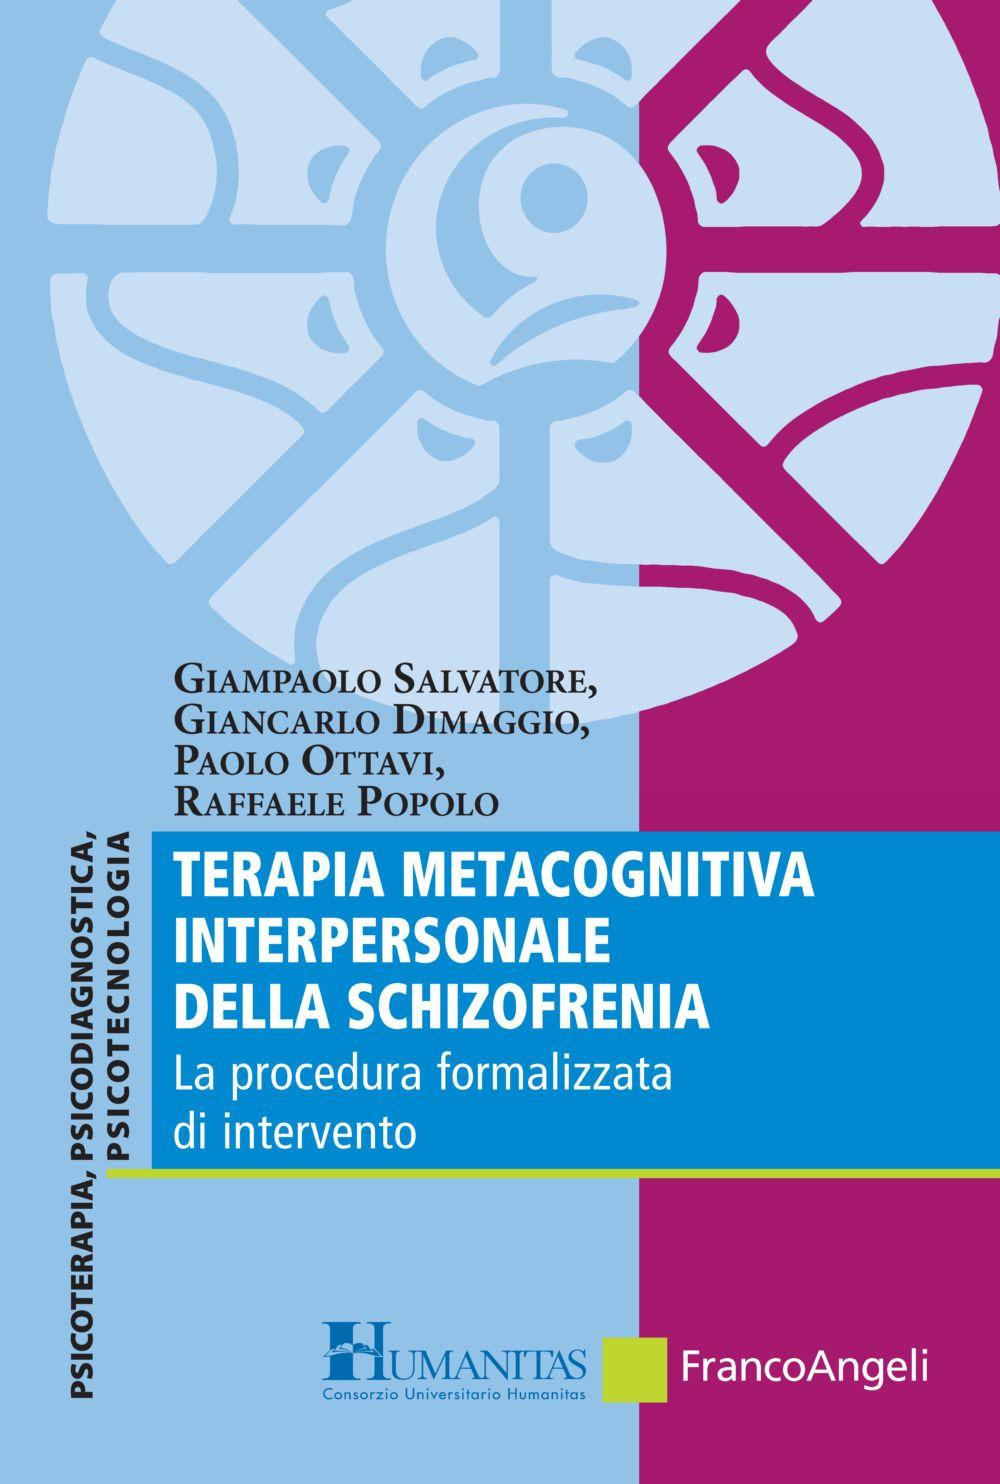 Terapia Metacognitiva interpersonale della Schizofrenia